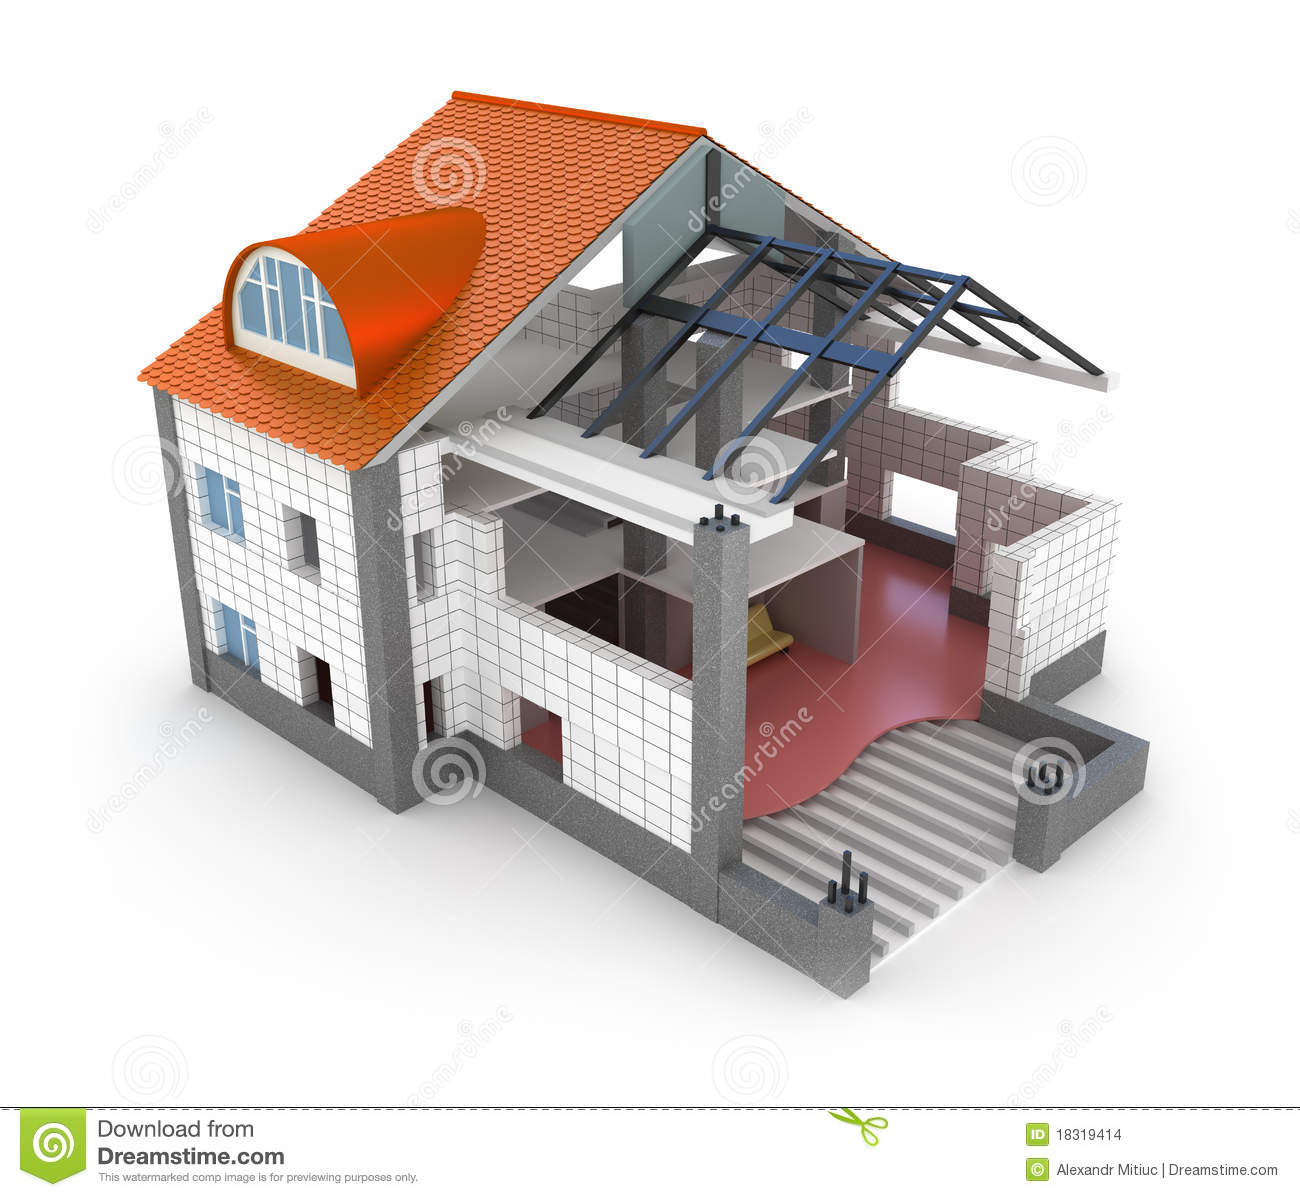 rchitecture Plan House Stock Images - Image: 18319414 - ^